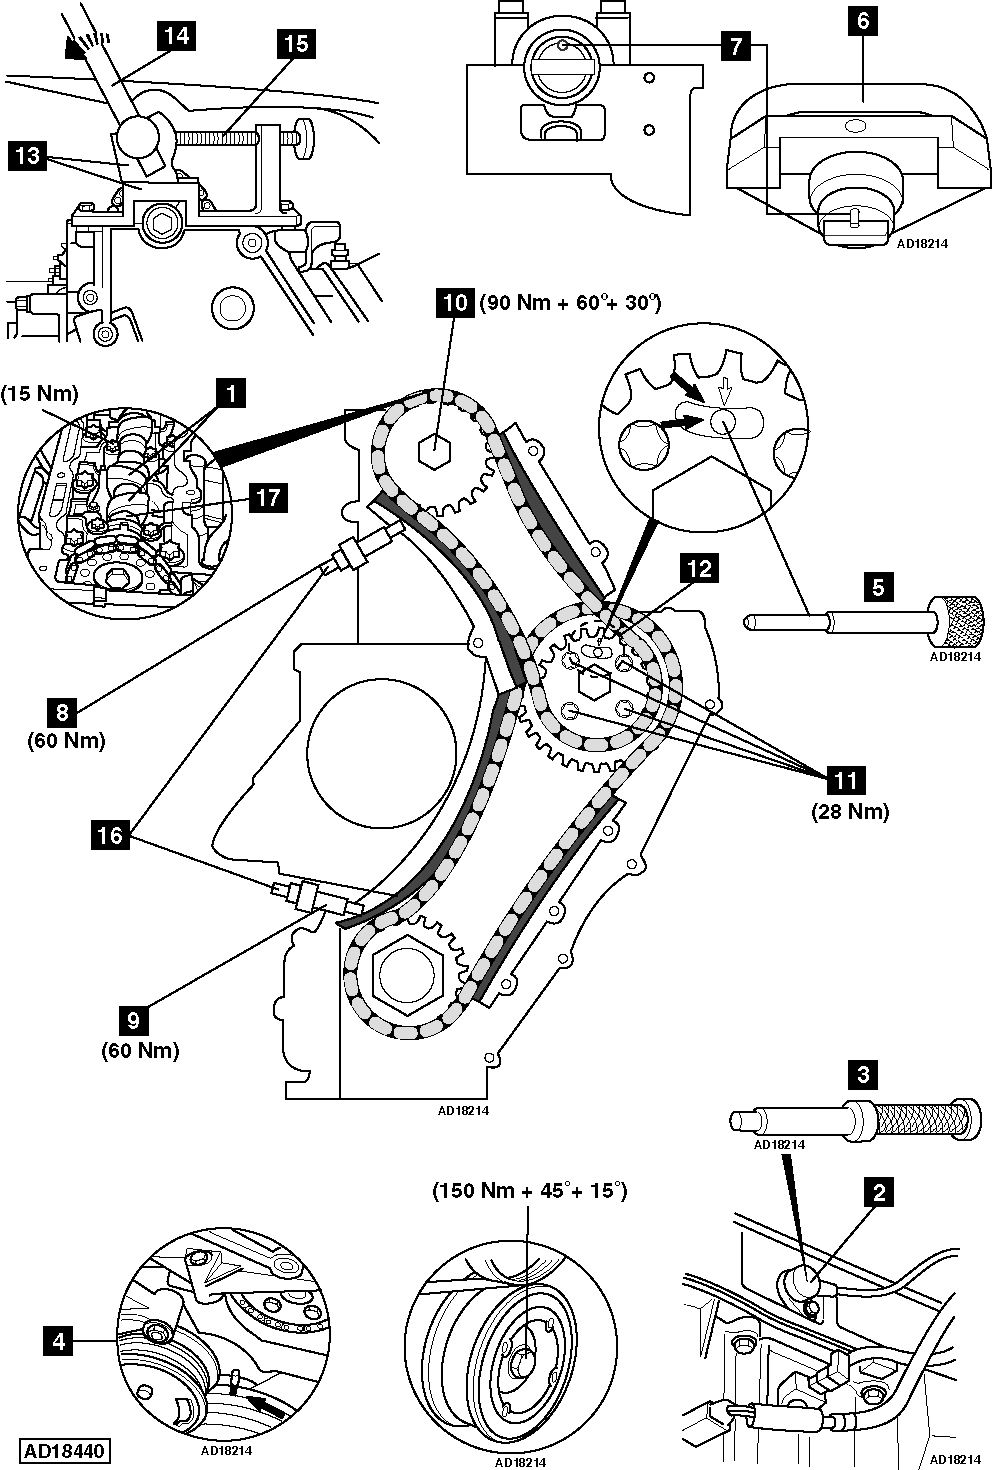 respond as well How To Replace Timing Chain On Vw Passat 3c 1 8 Tsi furthermore Chevrolet Silverado 1999 2006 How To Replace Knock Sensors 391168 in addition Chevrolet Tahoe 5 3 2007 Specs And Images furthermore T1922584 Need schematic rear brakes f150. on chevrolet camshaft position sensor